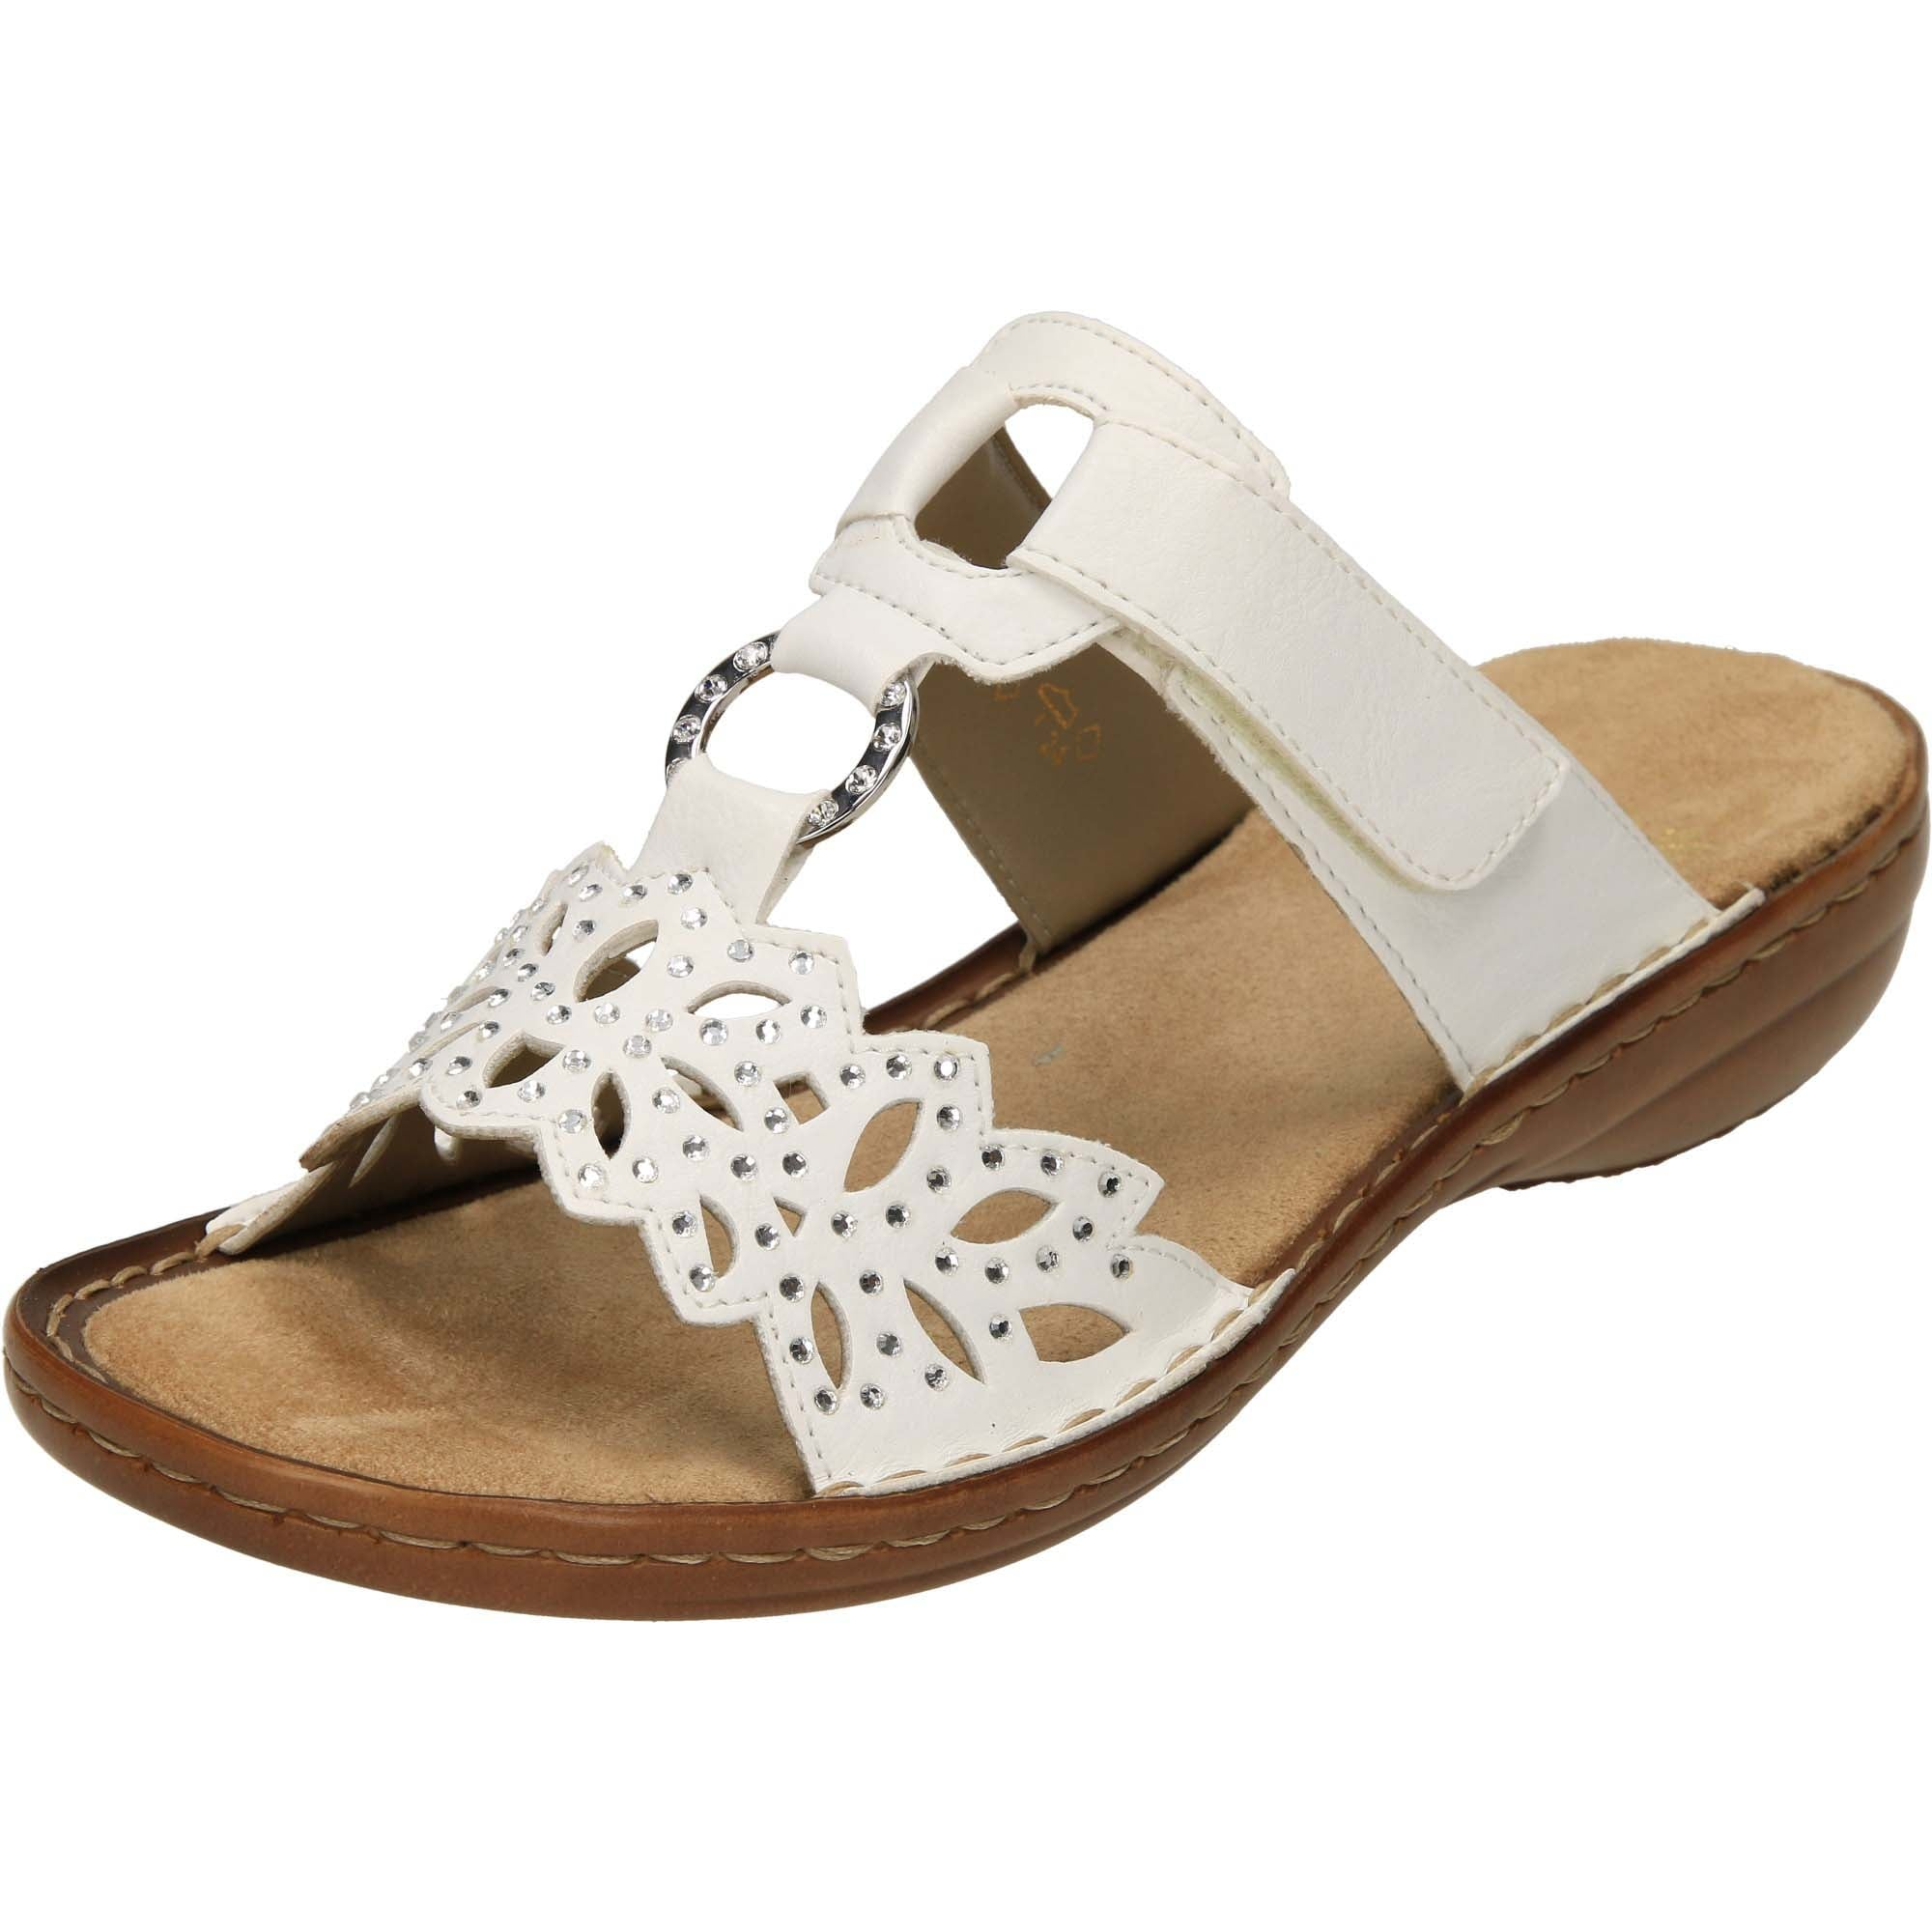 608A6 80 Ladies White Sandals